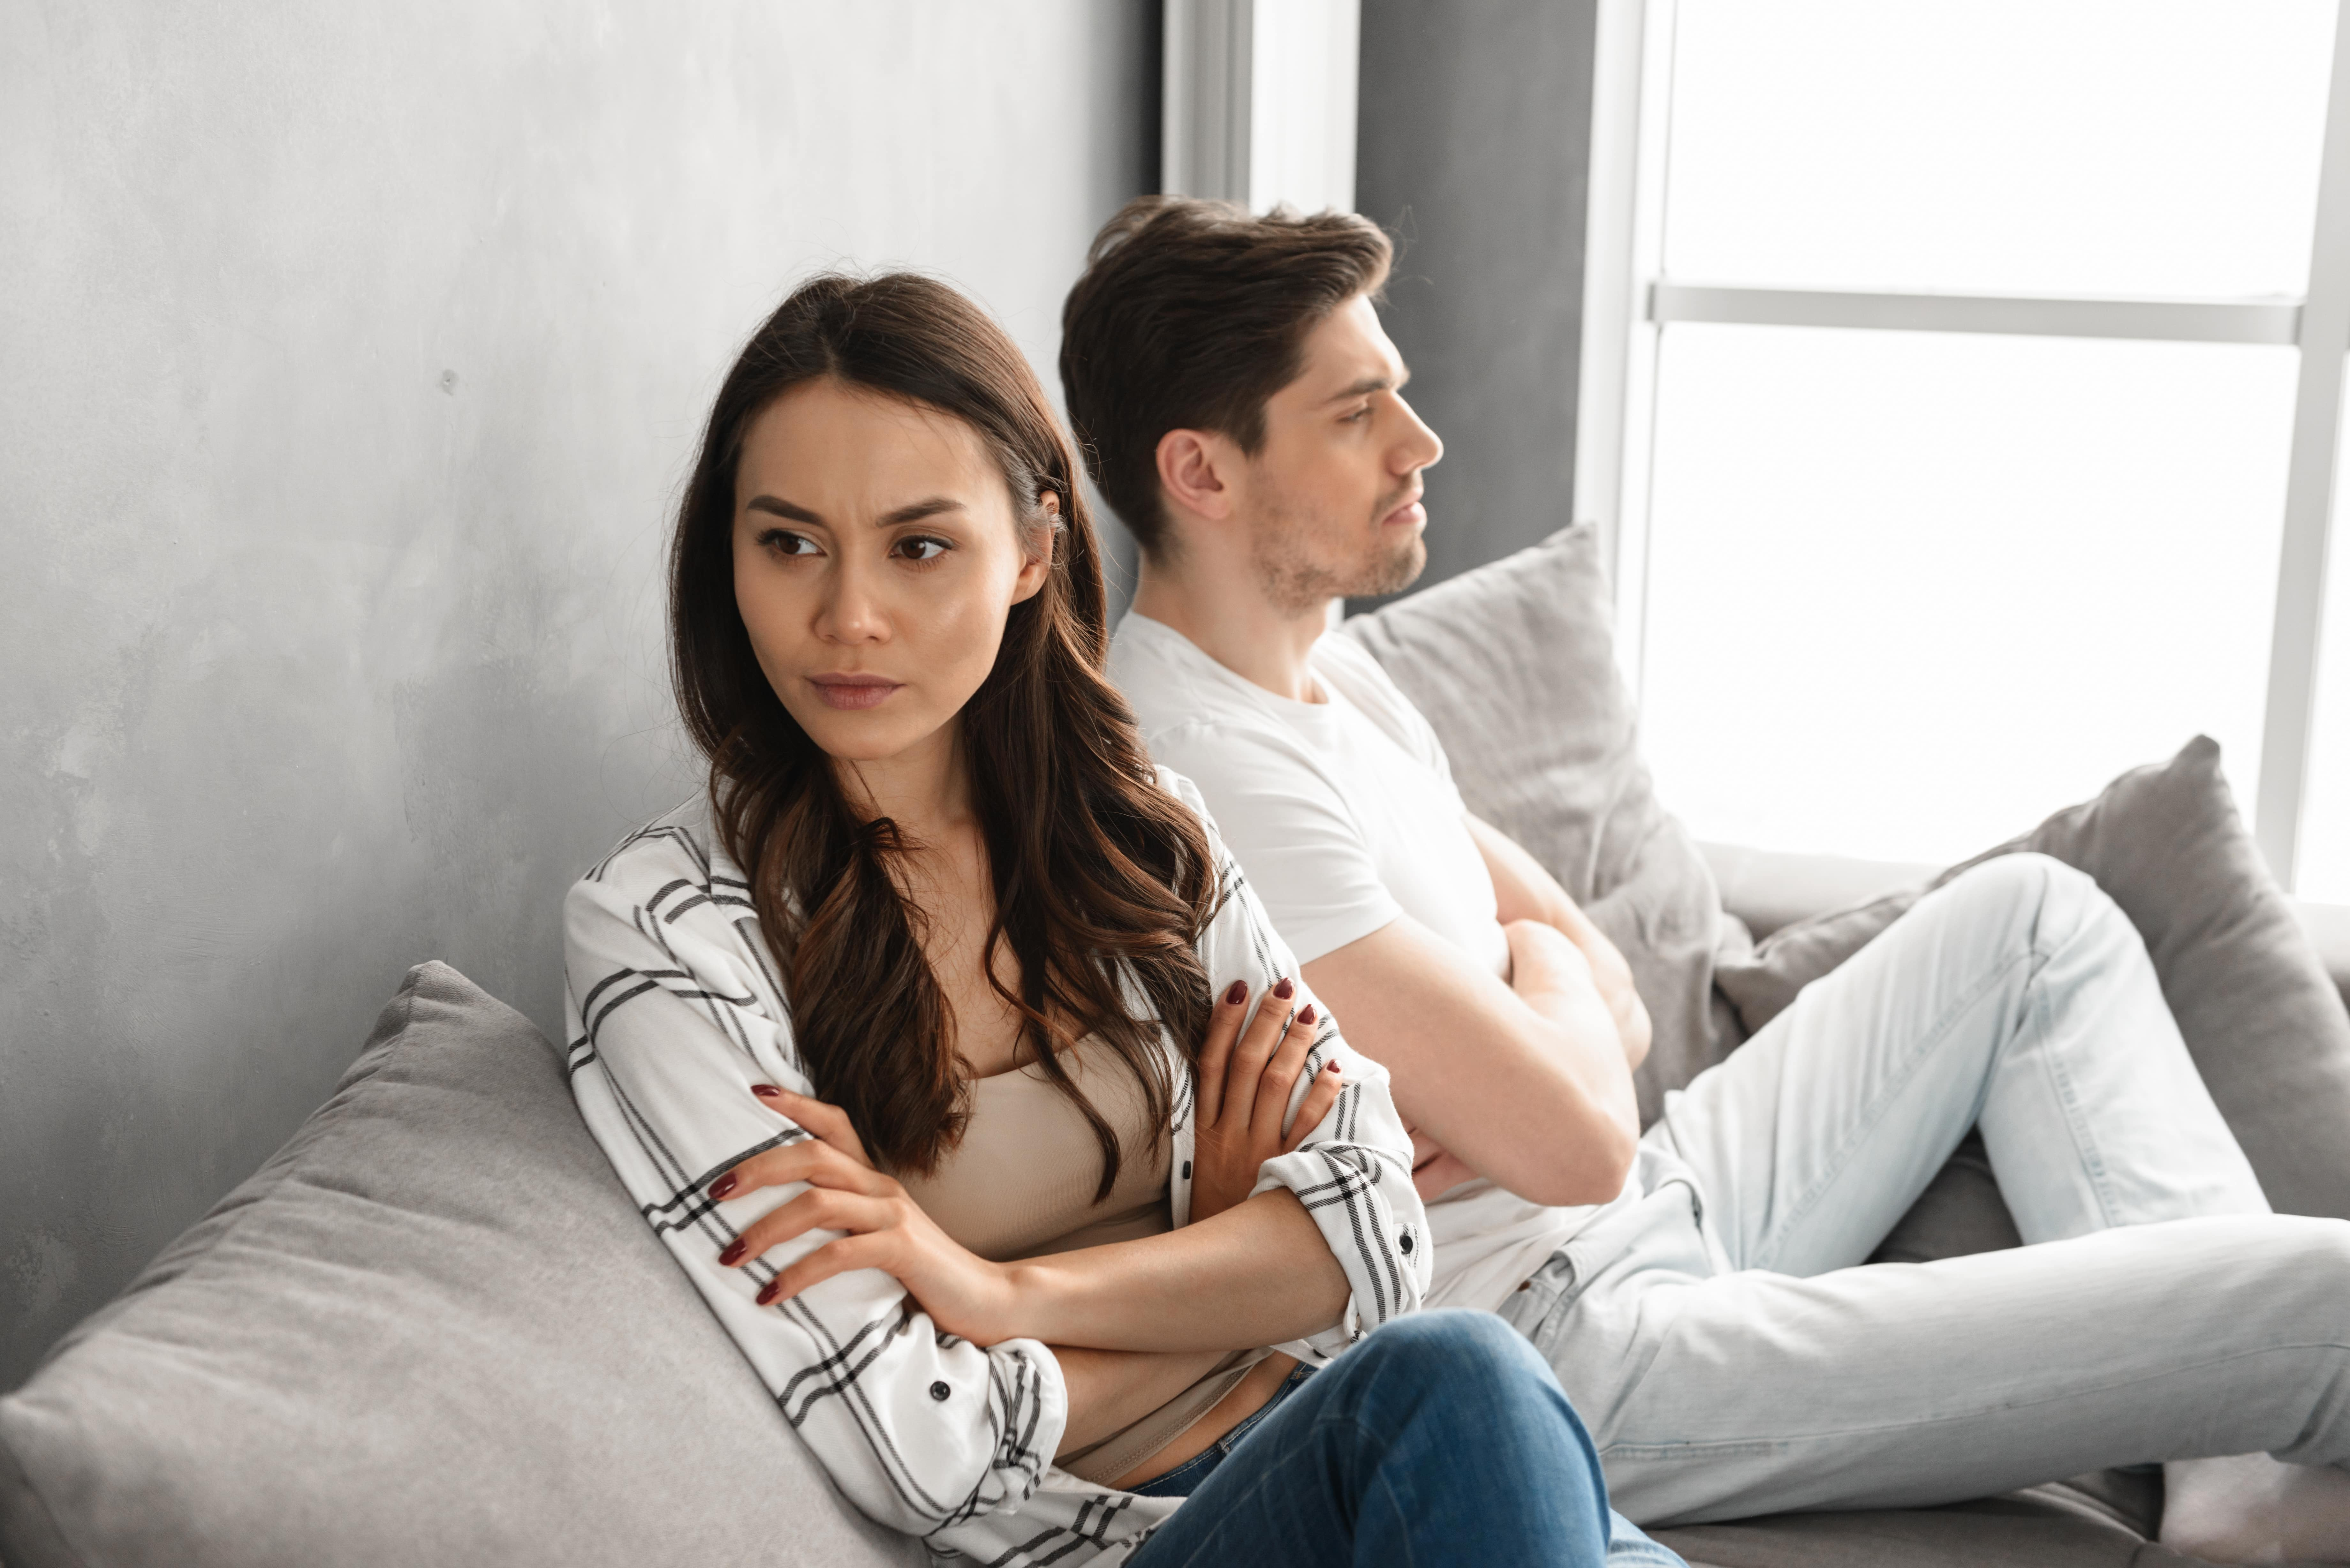 7 Signs Your Partner is Secretly Unhappy